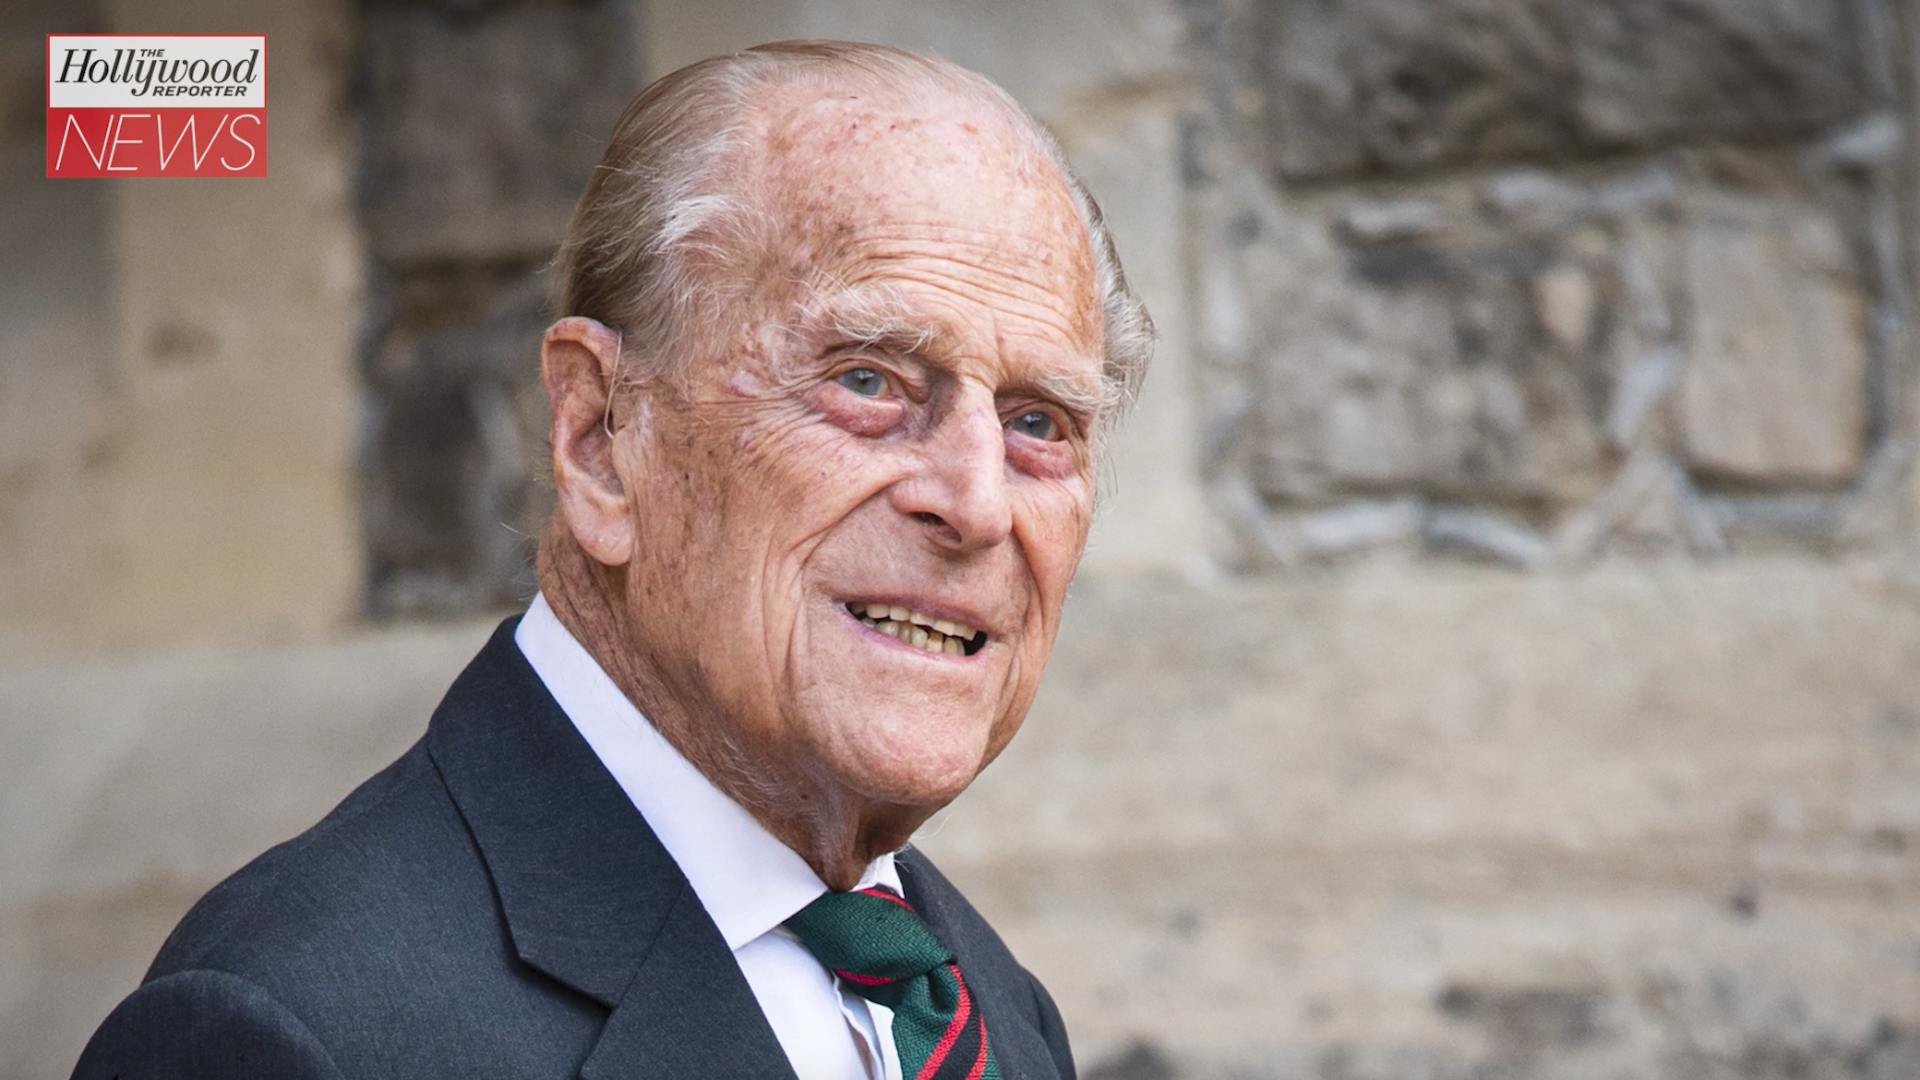 Remembering Prince Philip, Duke of Edinburgh, Who Died at 99 | THR News